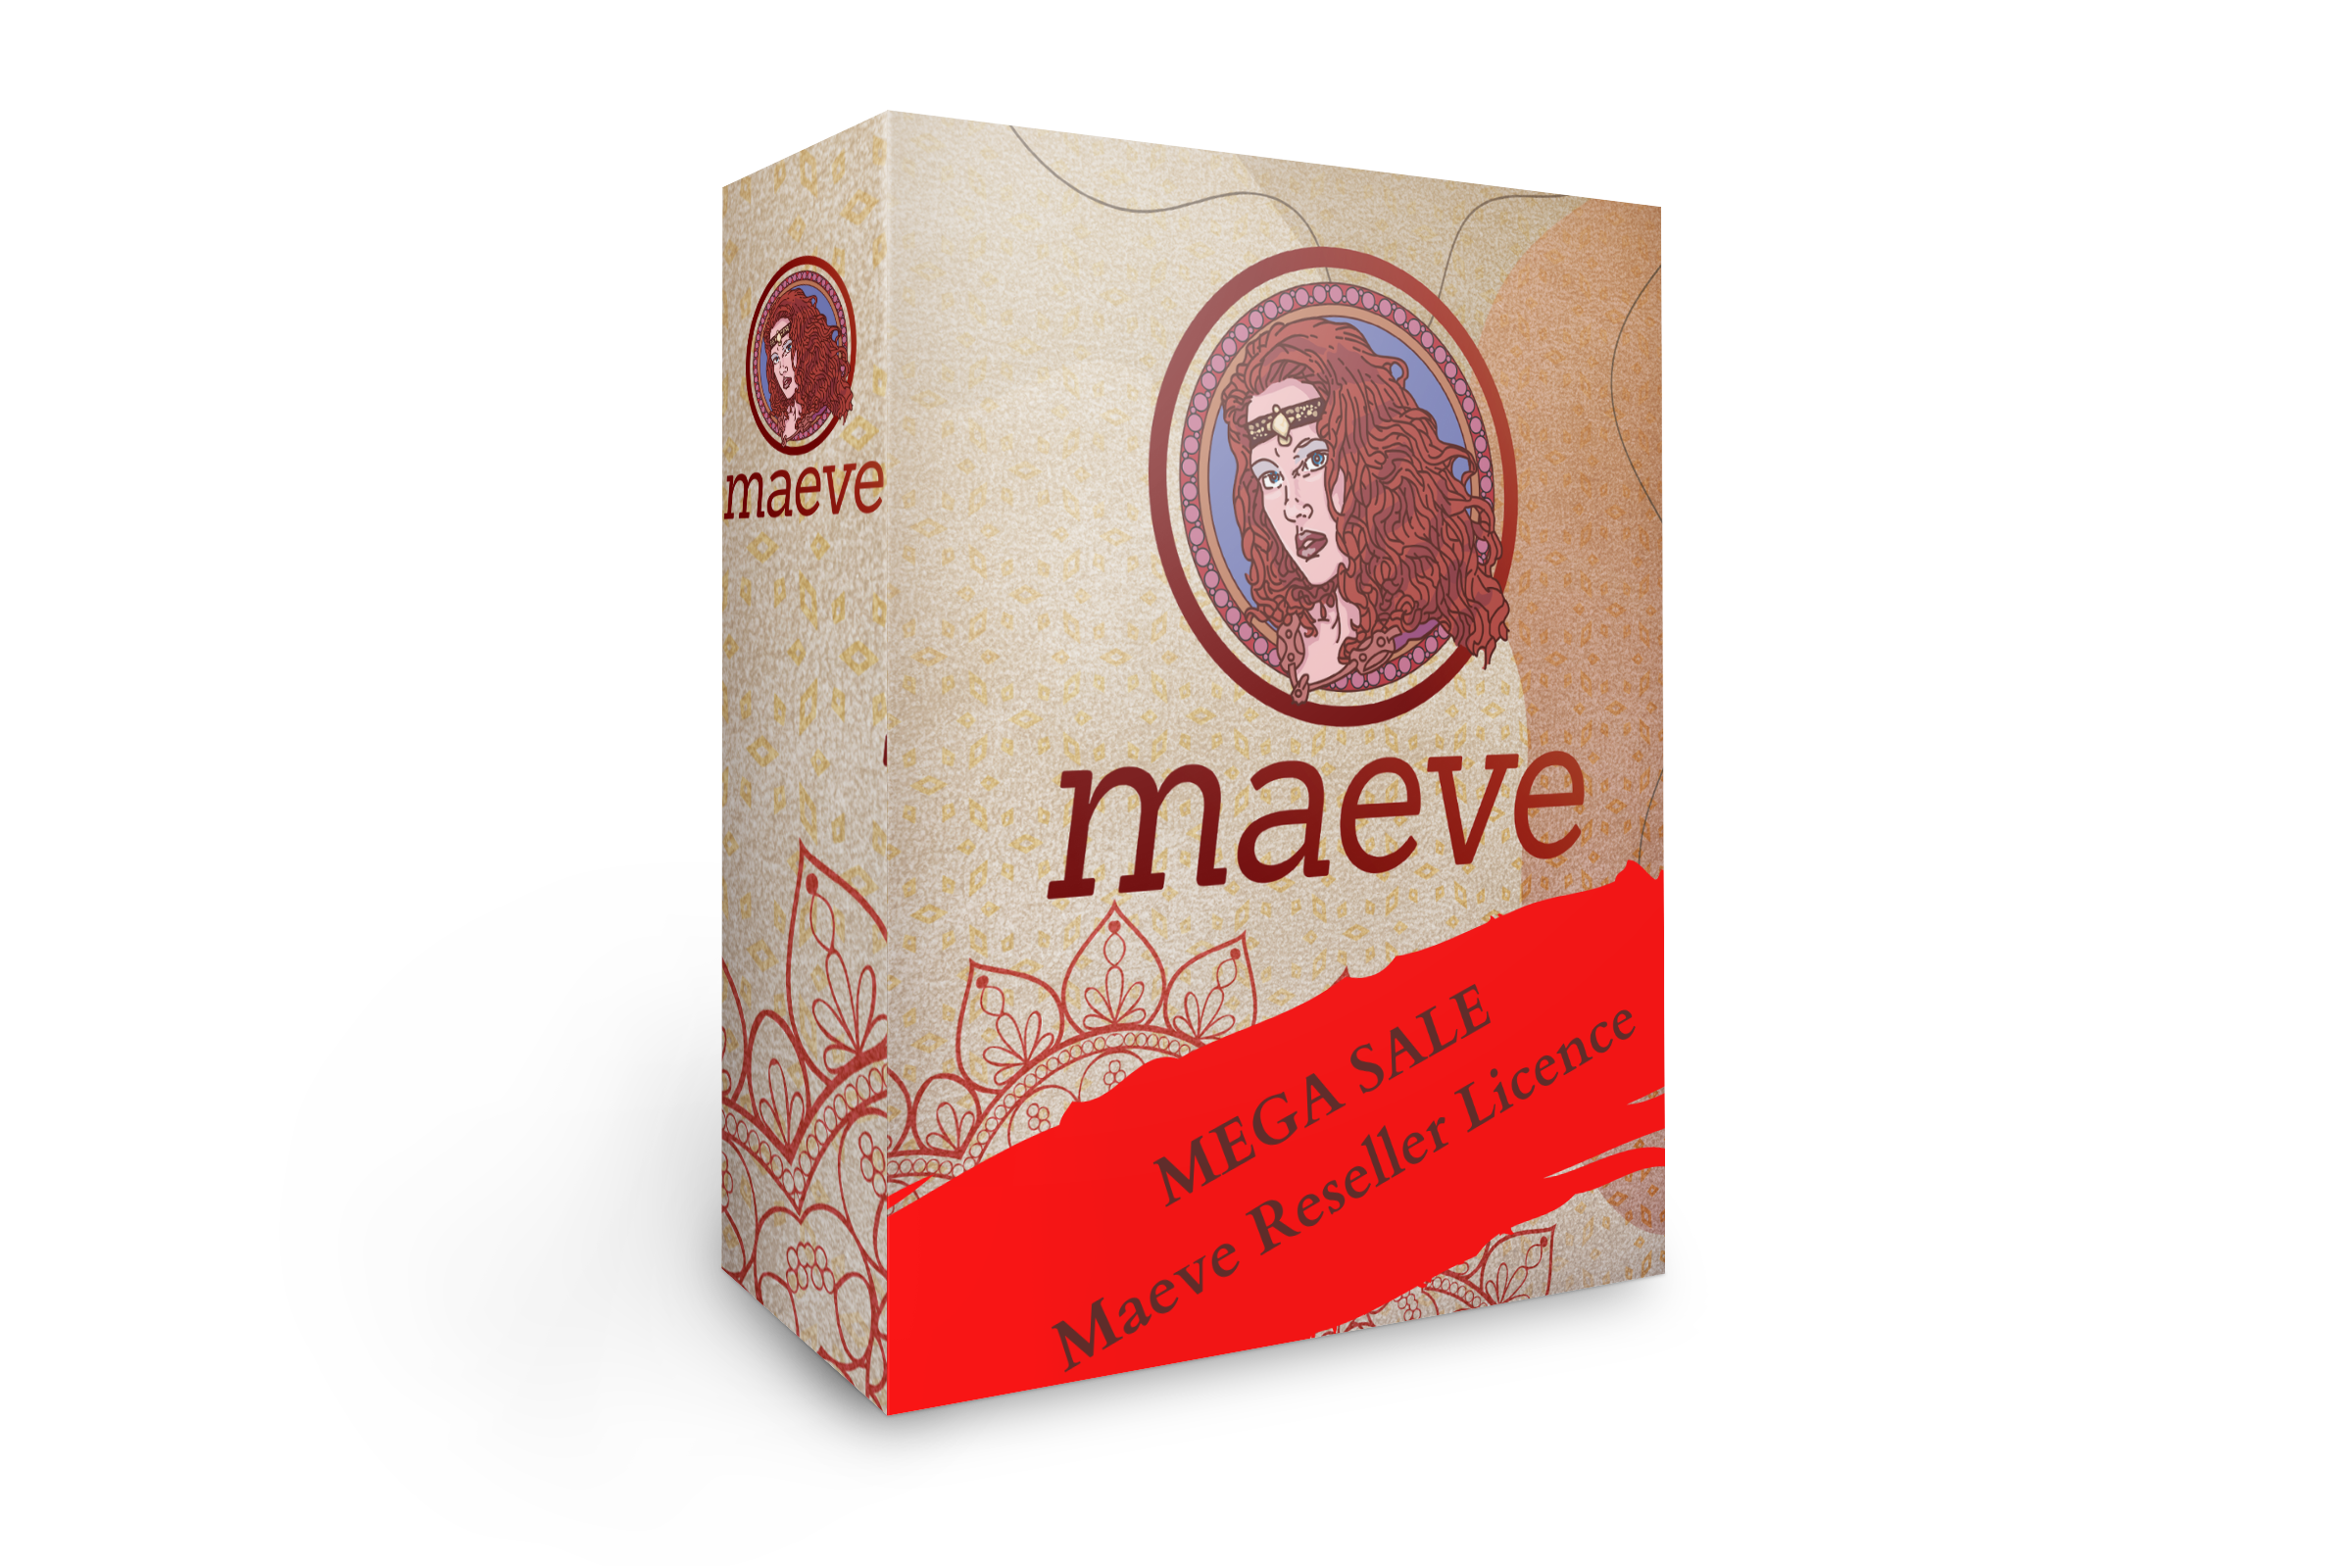 Maeve Review